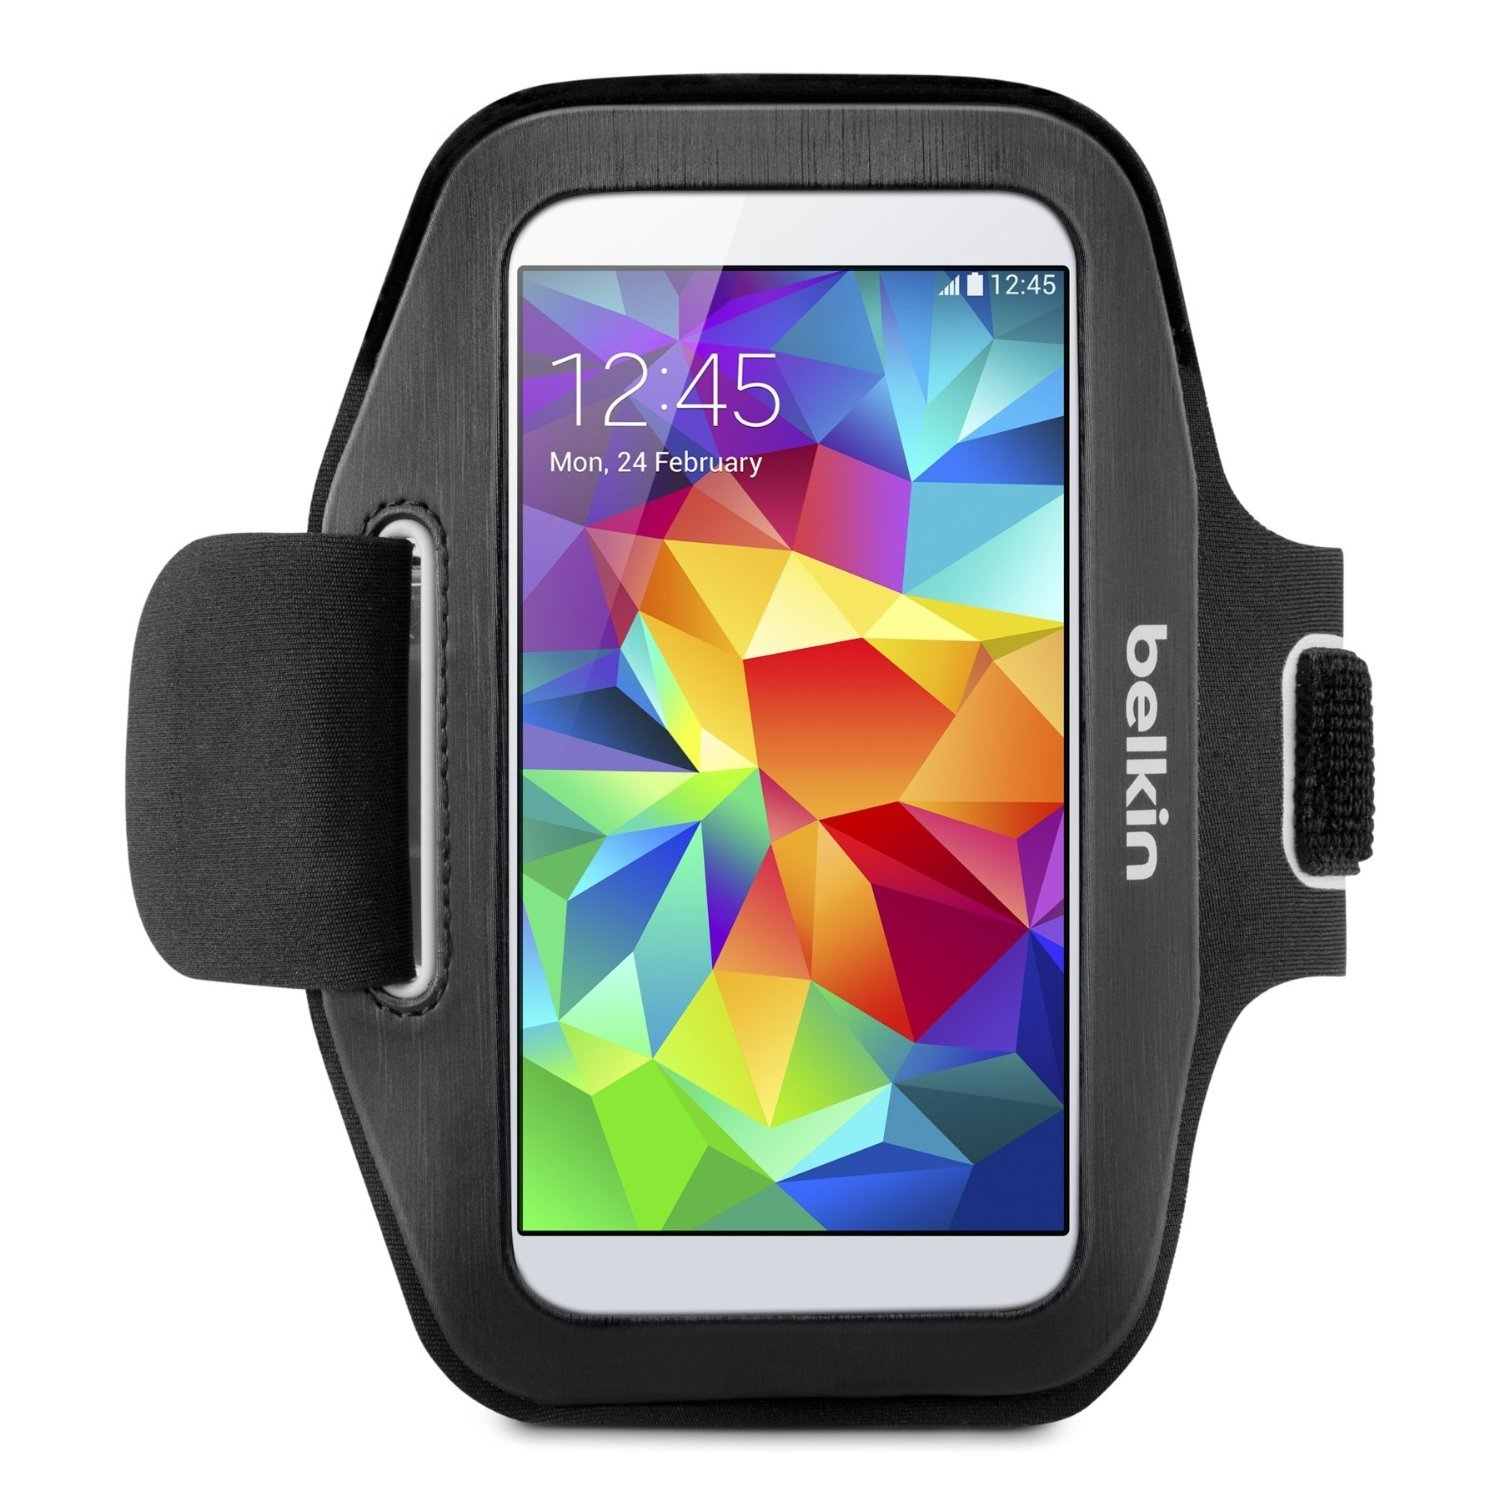 Amazon Belkin Sport Fit Armband for Samsung Galaxy S5 S4 S4 Active S3 Black Cell Phones & Accessories